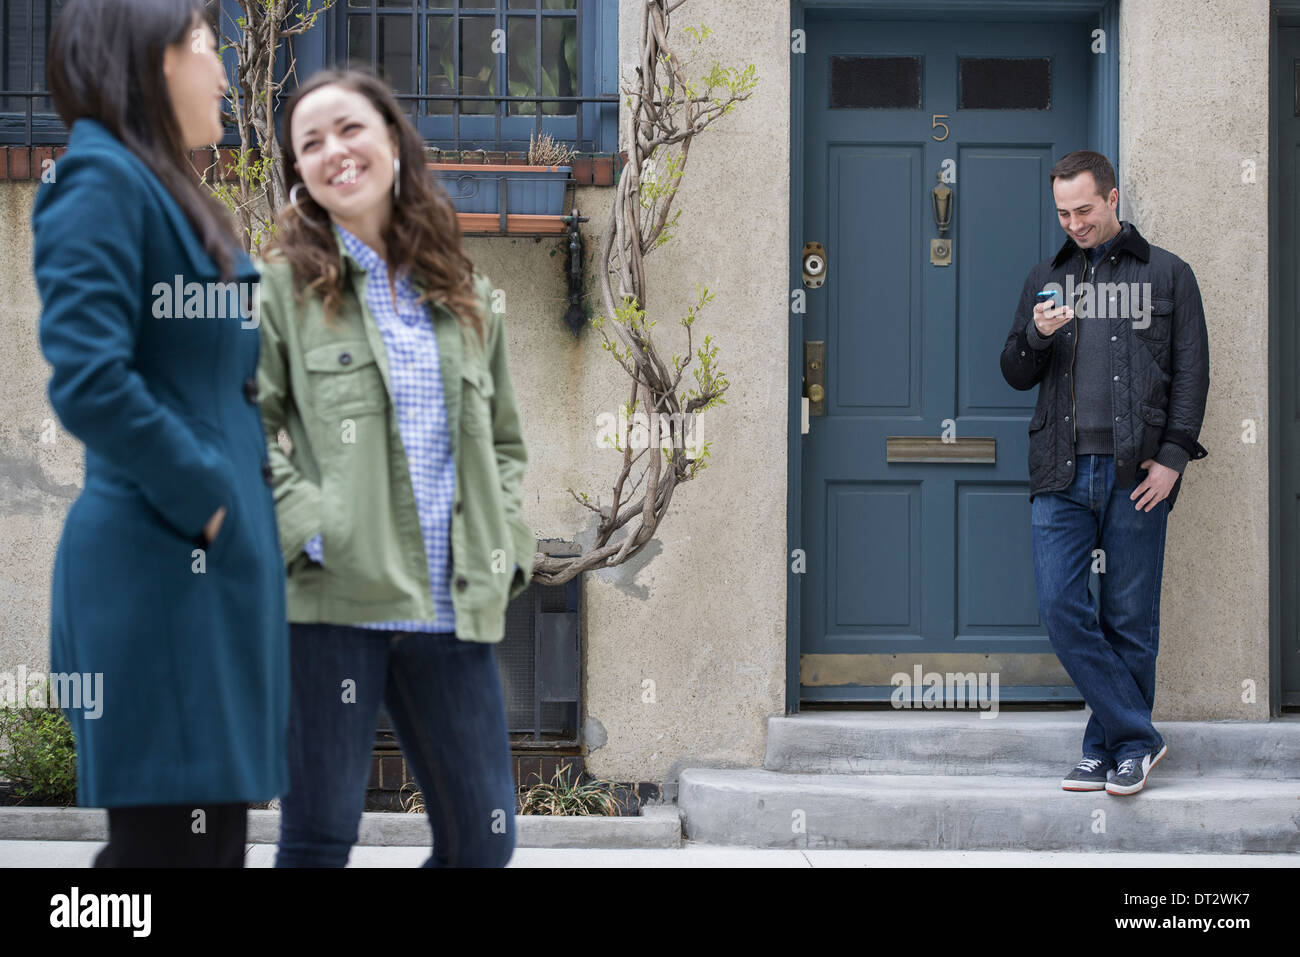 Two women talking as they walk down a street A man leaning against a house door checking his phone - Stock Image